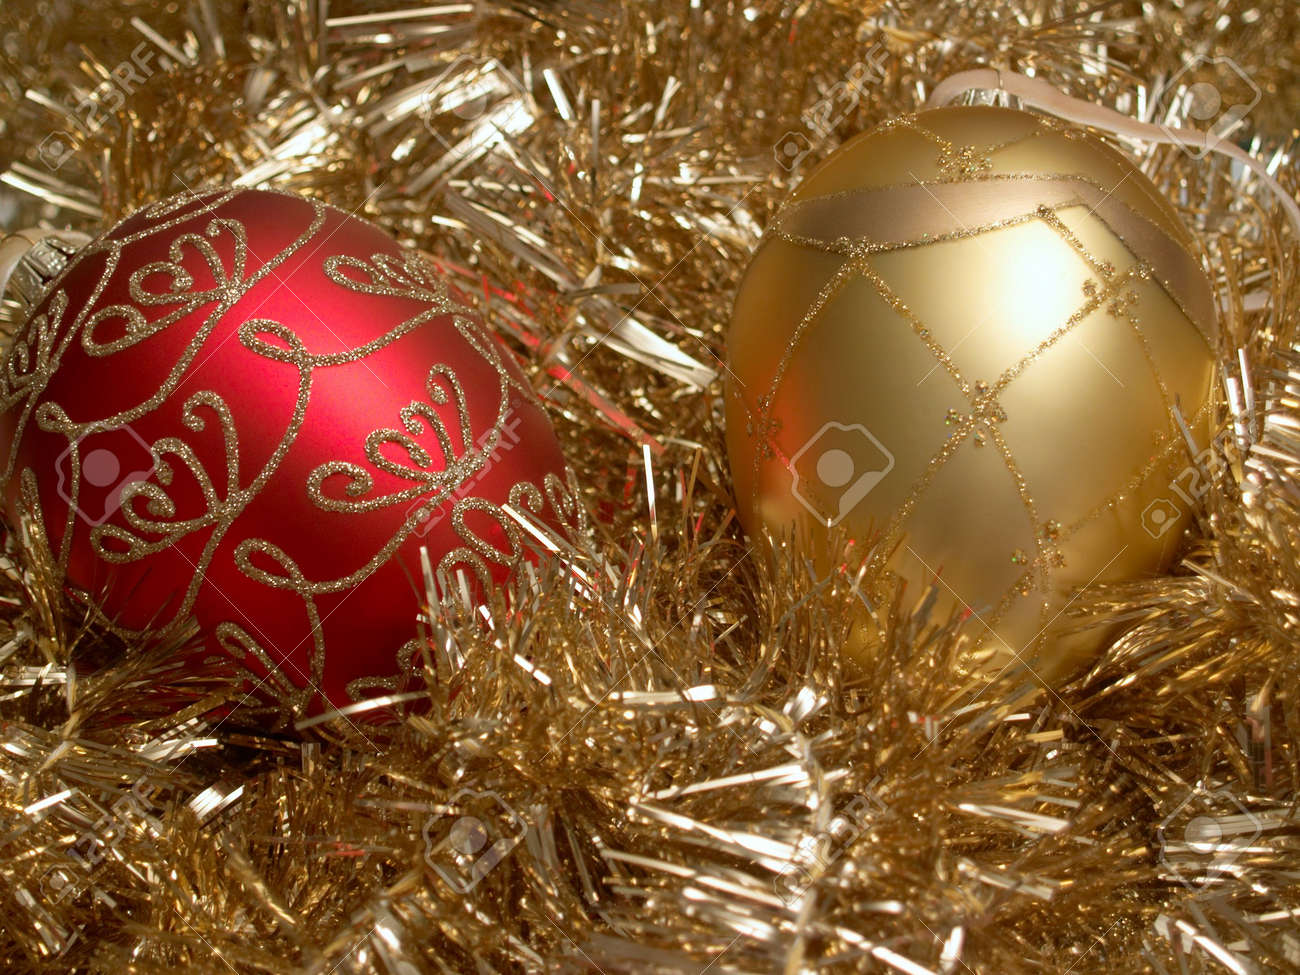 Red and gold christmas ornaments - Red And Gold Christmas Ornaments On A Bed Of Gold Tinsel Stock Photo 3352923